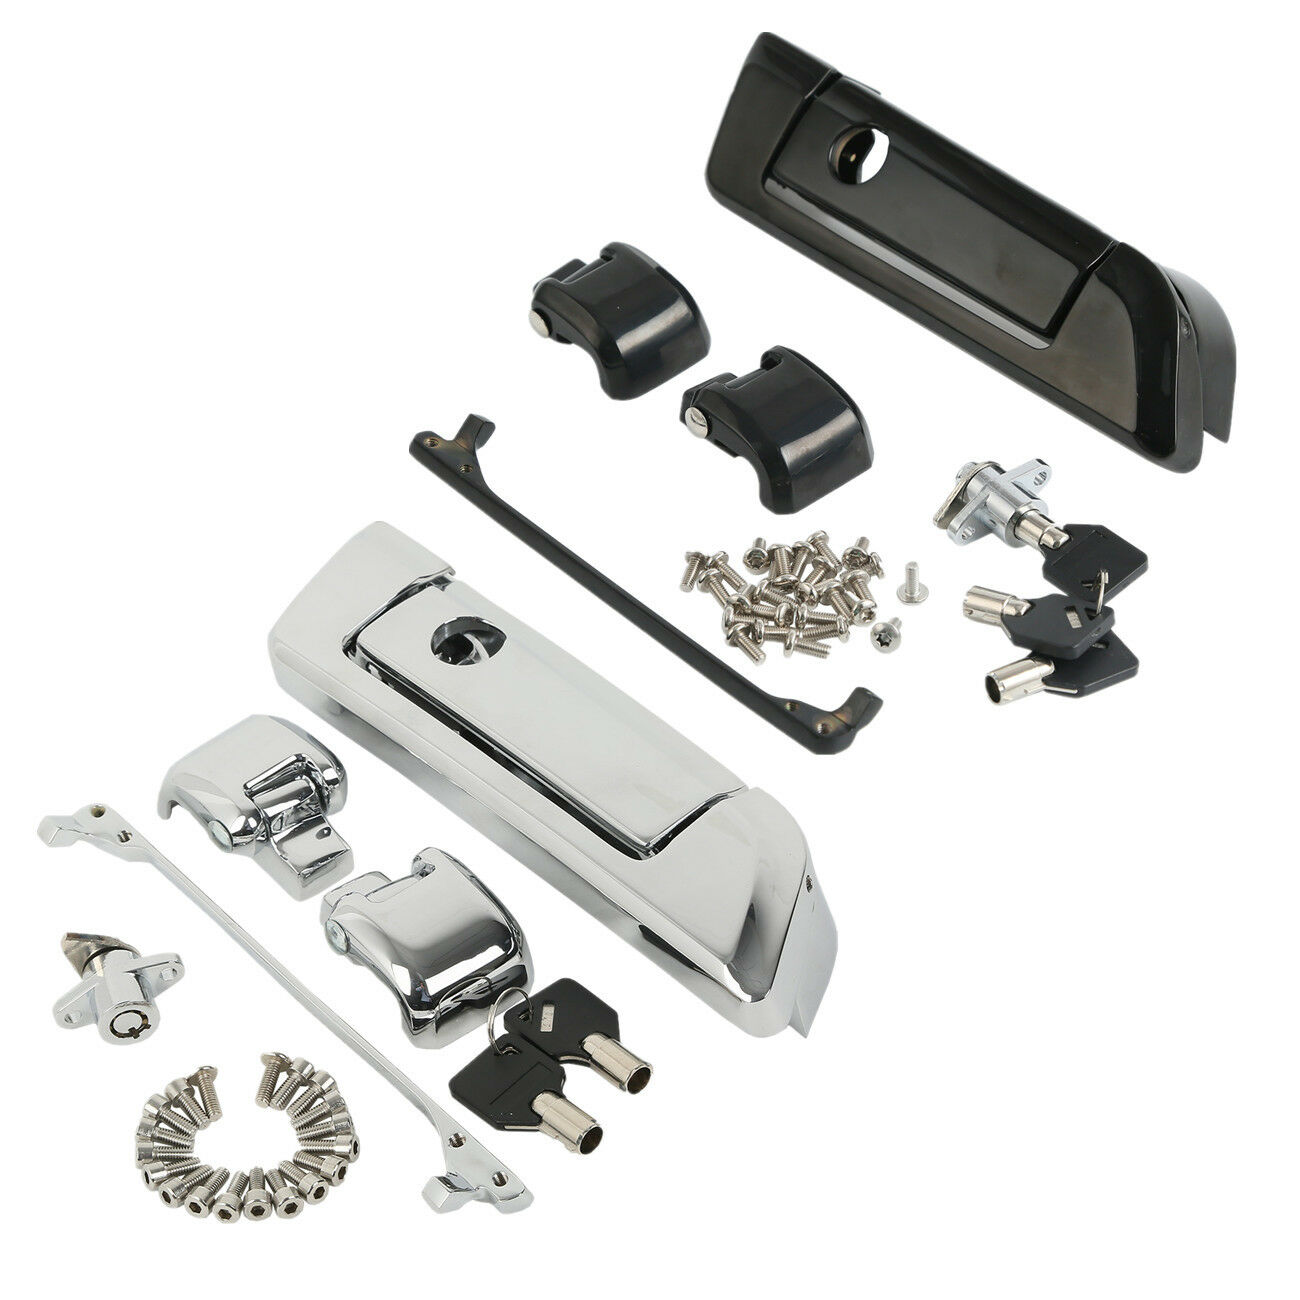 Motorcycle Tour Pak Pack Trunk Latch For Harley Touring Road King Street Glide Electra Ultra-Classic FLHT FLHX 2014-2020 17 16